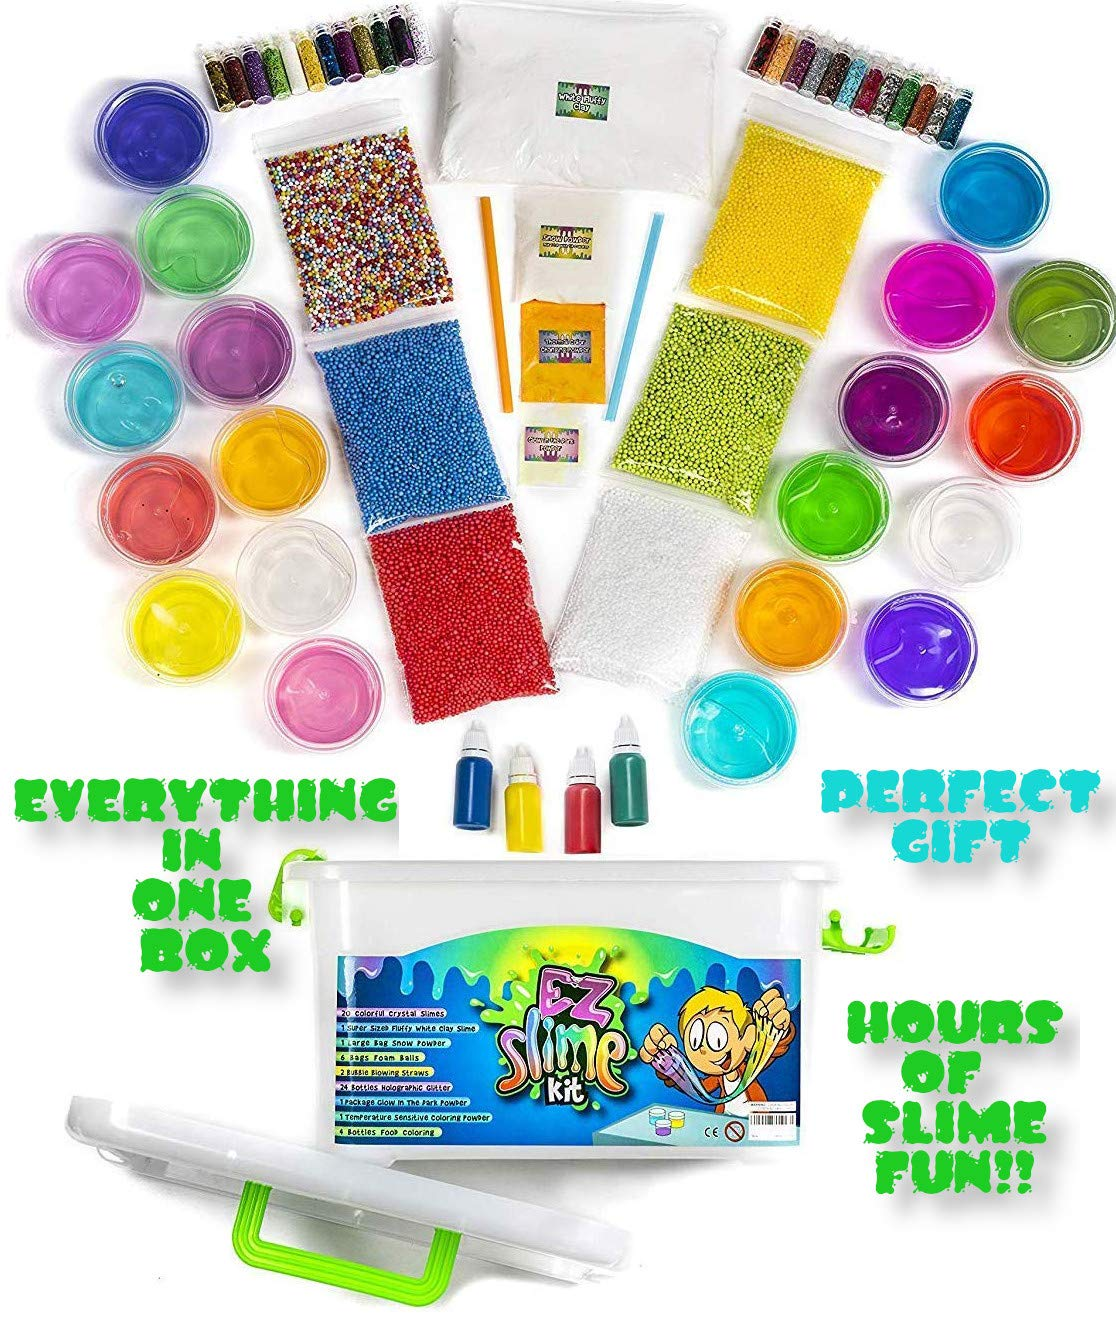 EZ Slime Kit- Boys Girls Everyone. Crystal Slime, Fluffy Clay Slime, Fake Snow, Glow Powder, Thermal Powder, Foam Beads, Glitter, Plus More. 60 Piece Kit. Over 3 Pounds by EZ Slime Kit (Image #2)